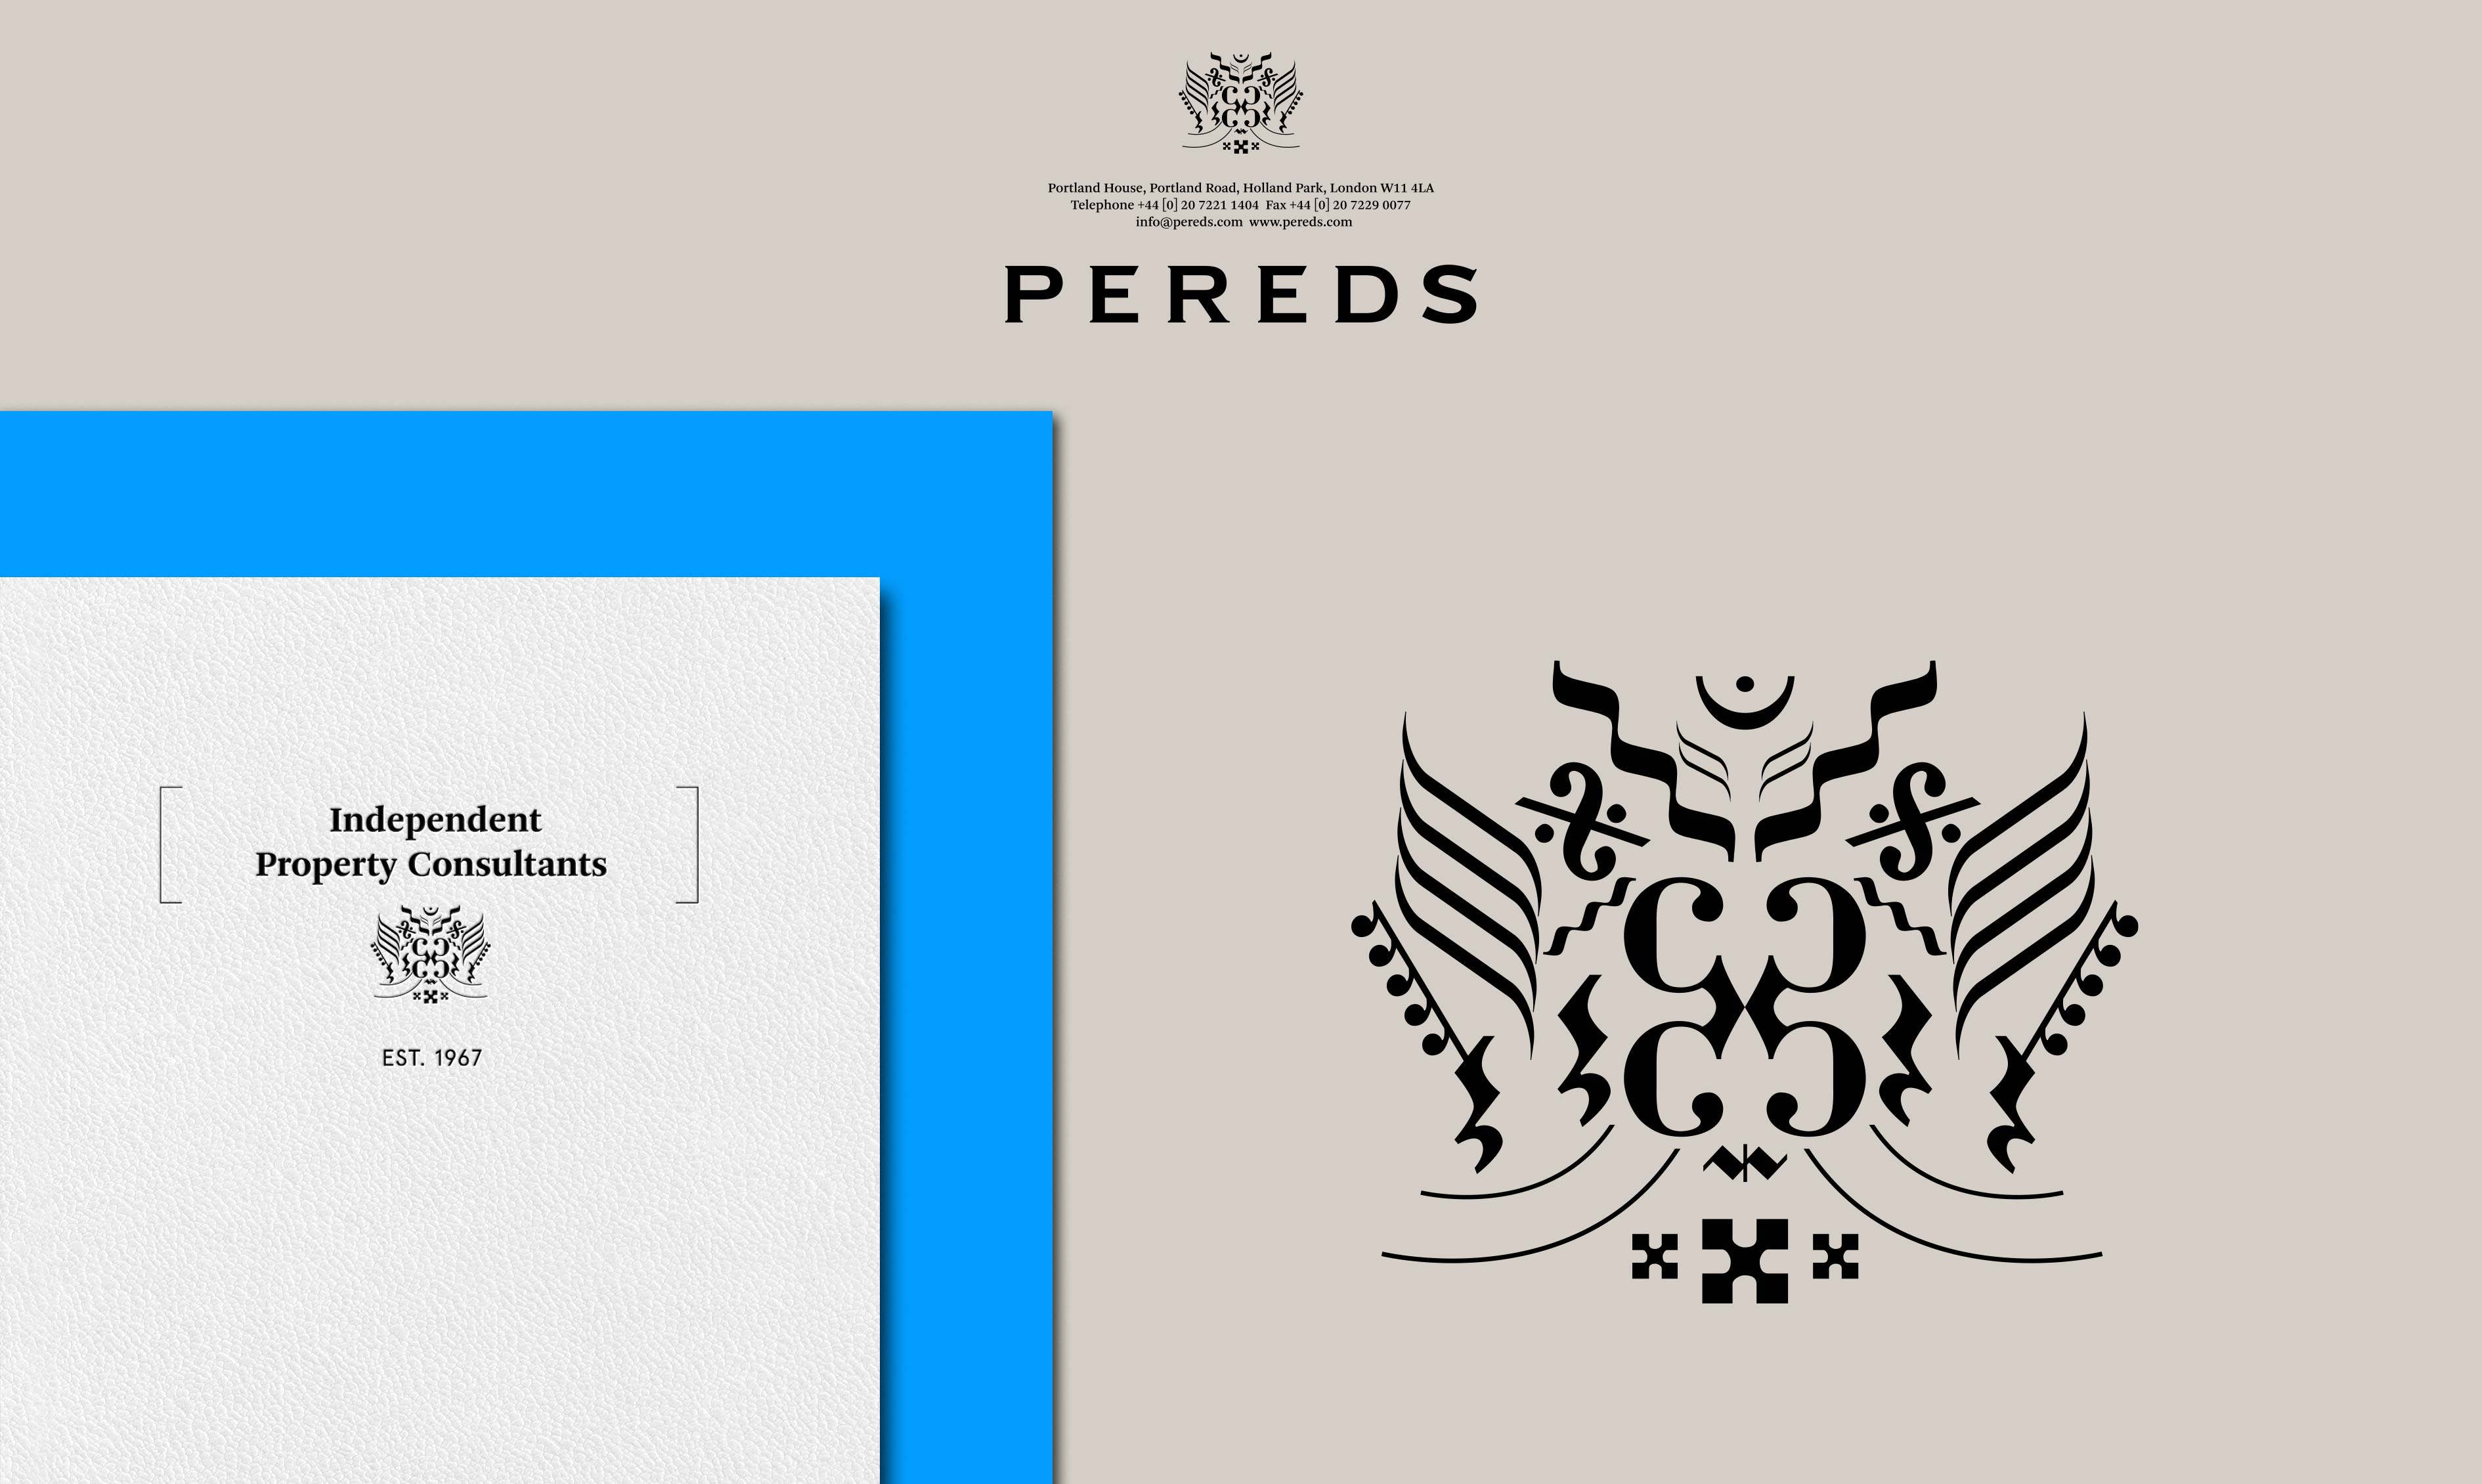 Pereds, London Property Consultants | Identity